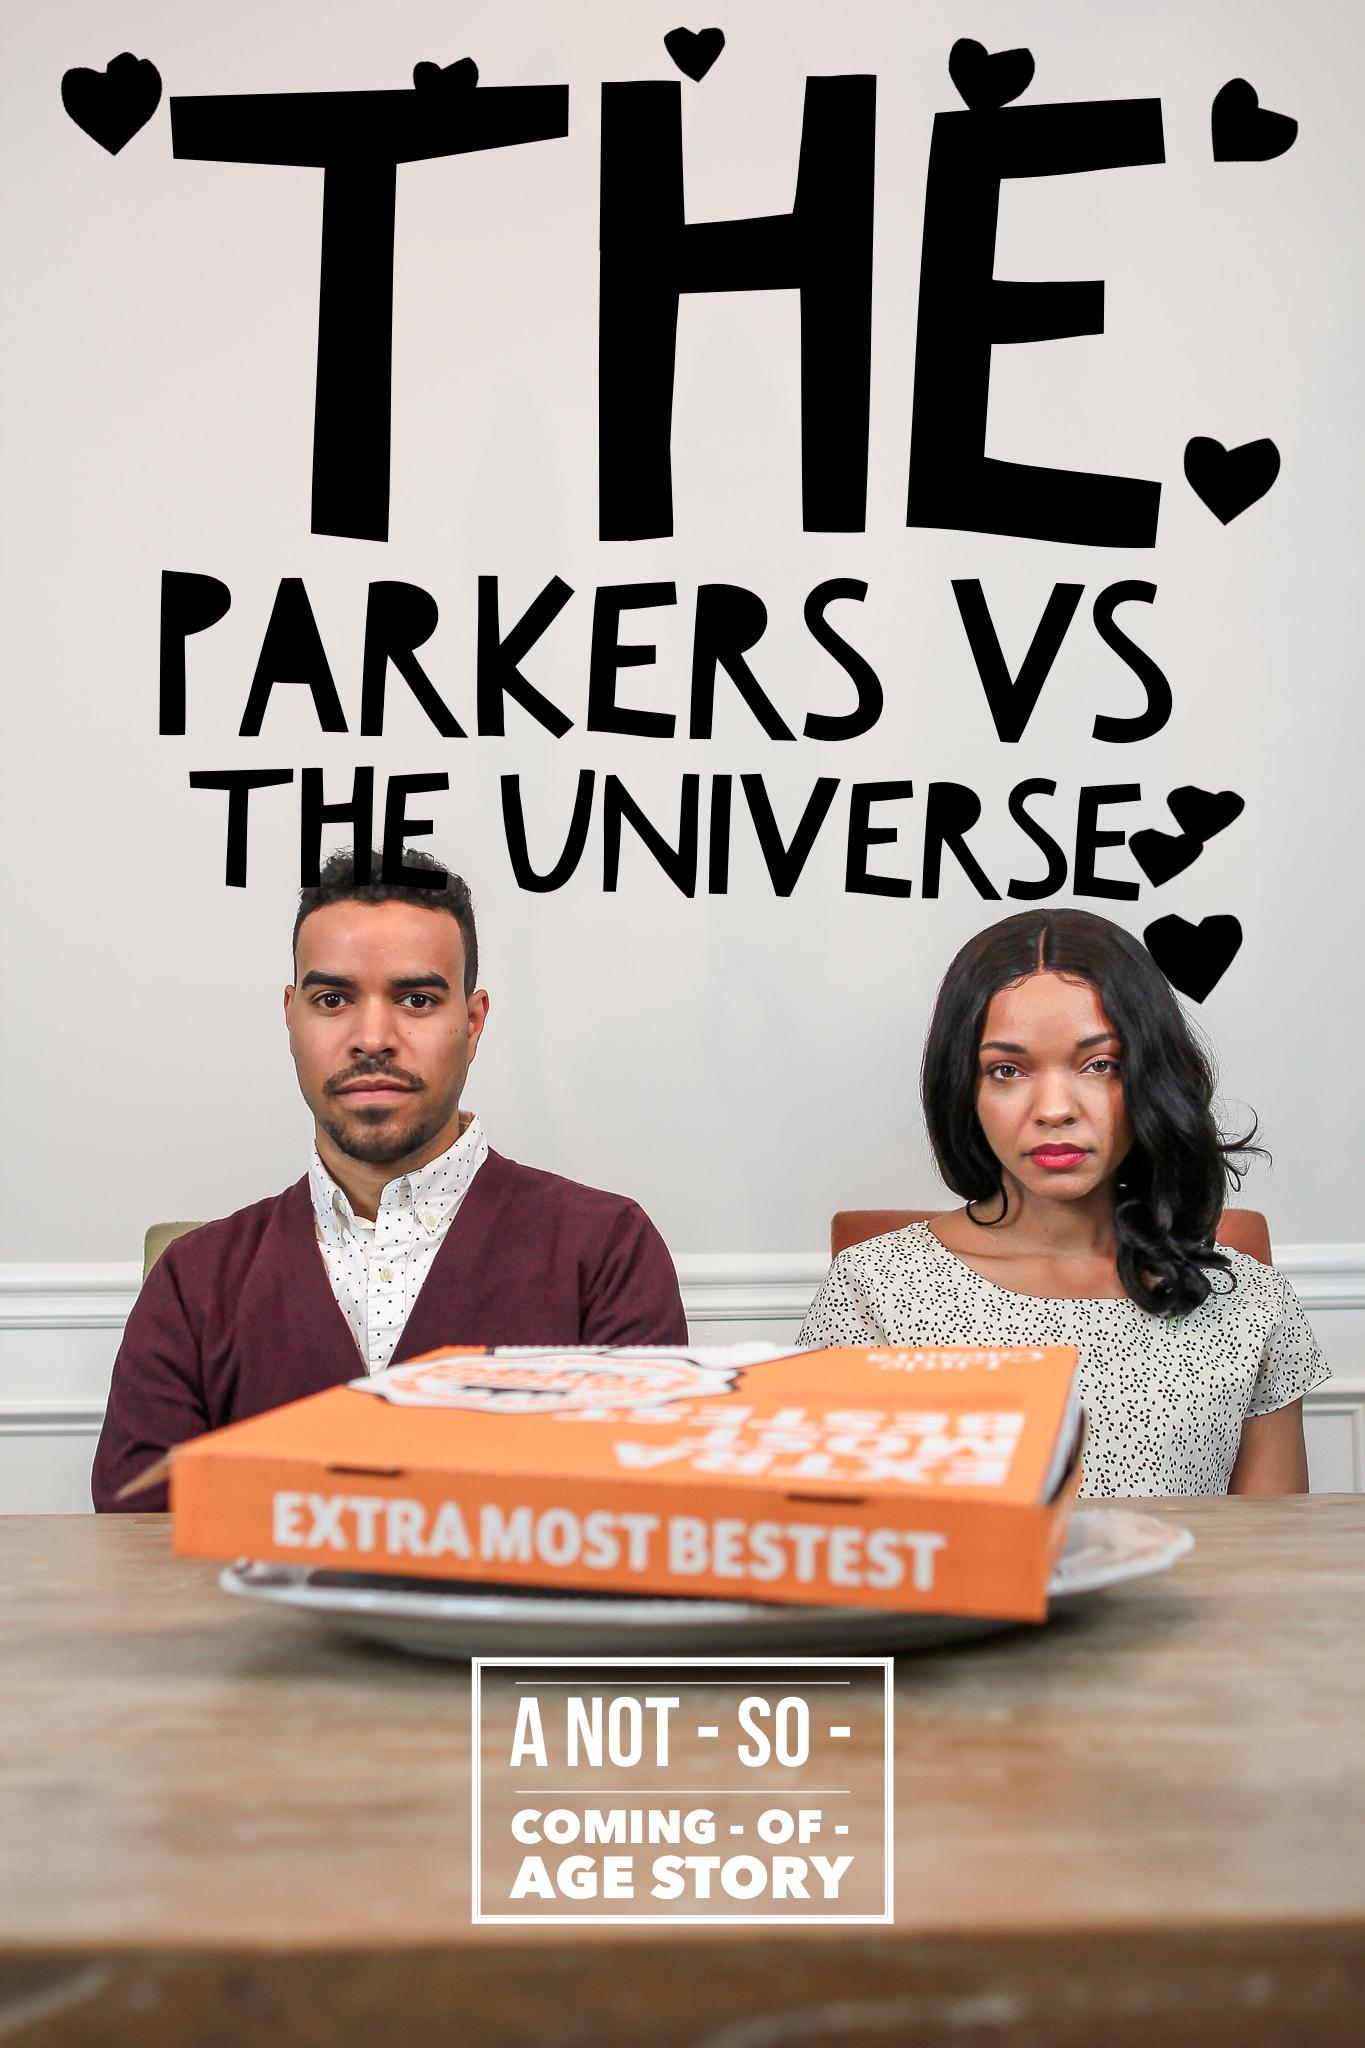 Cherie Antoinette and Blake Bodden in The Parkers v.s the Universe (2019)